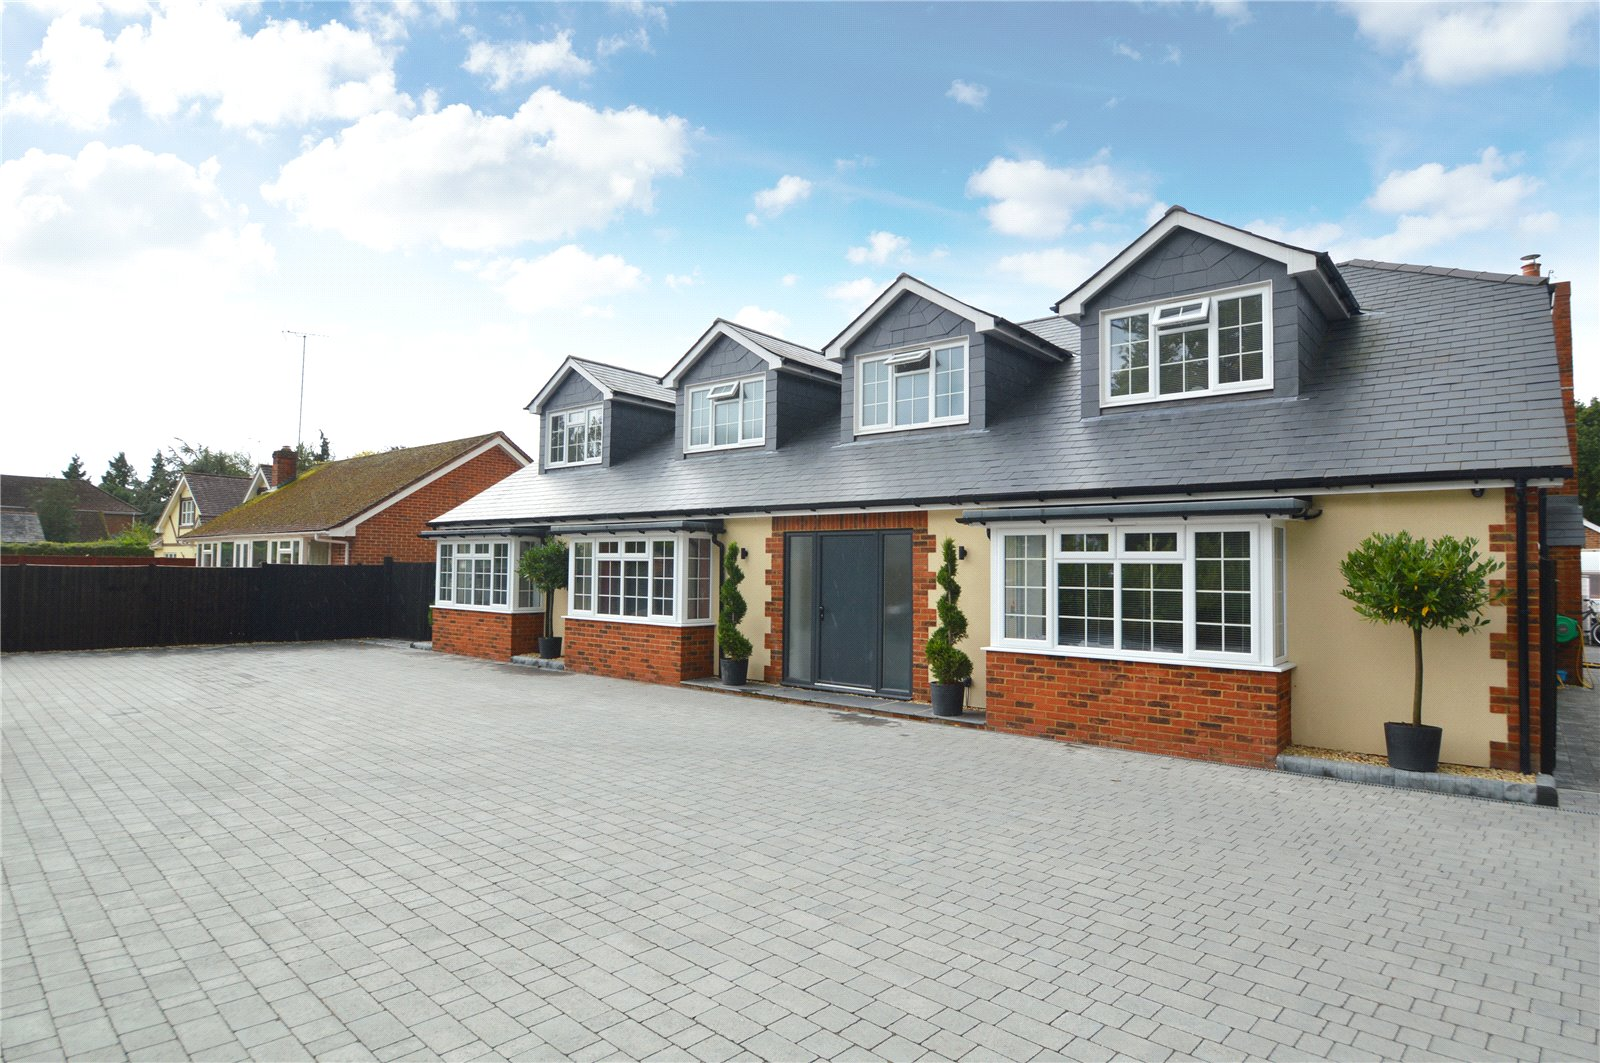 Property for sale | 6 Bedroom  House property in Finchampstead, Berkshire, RG40 |  |